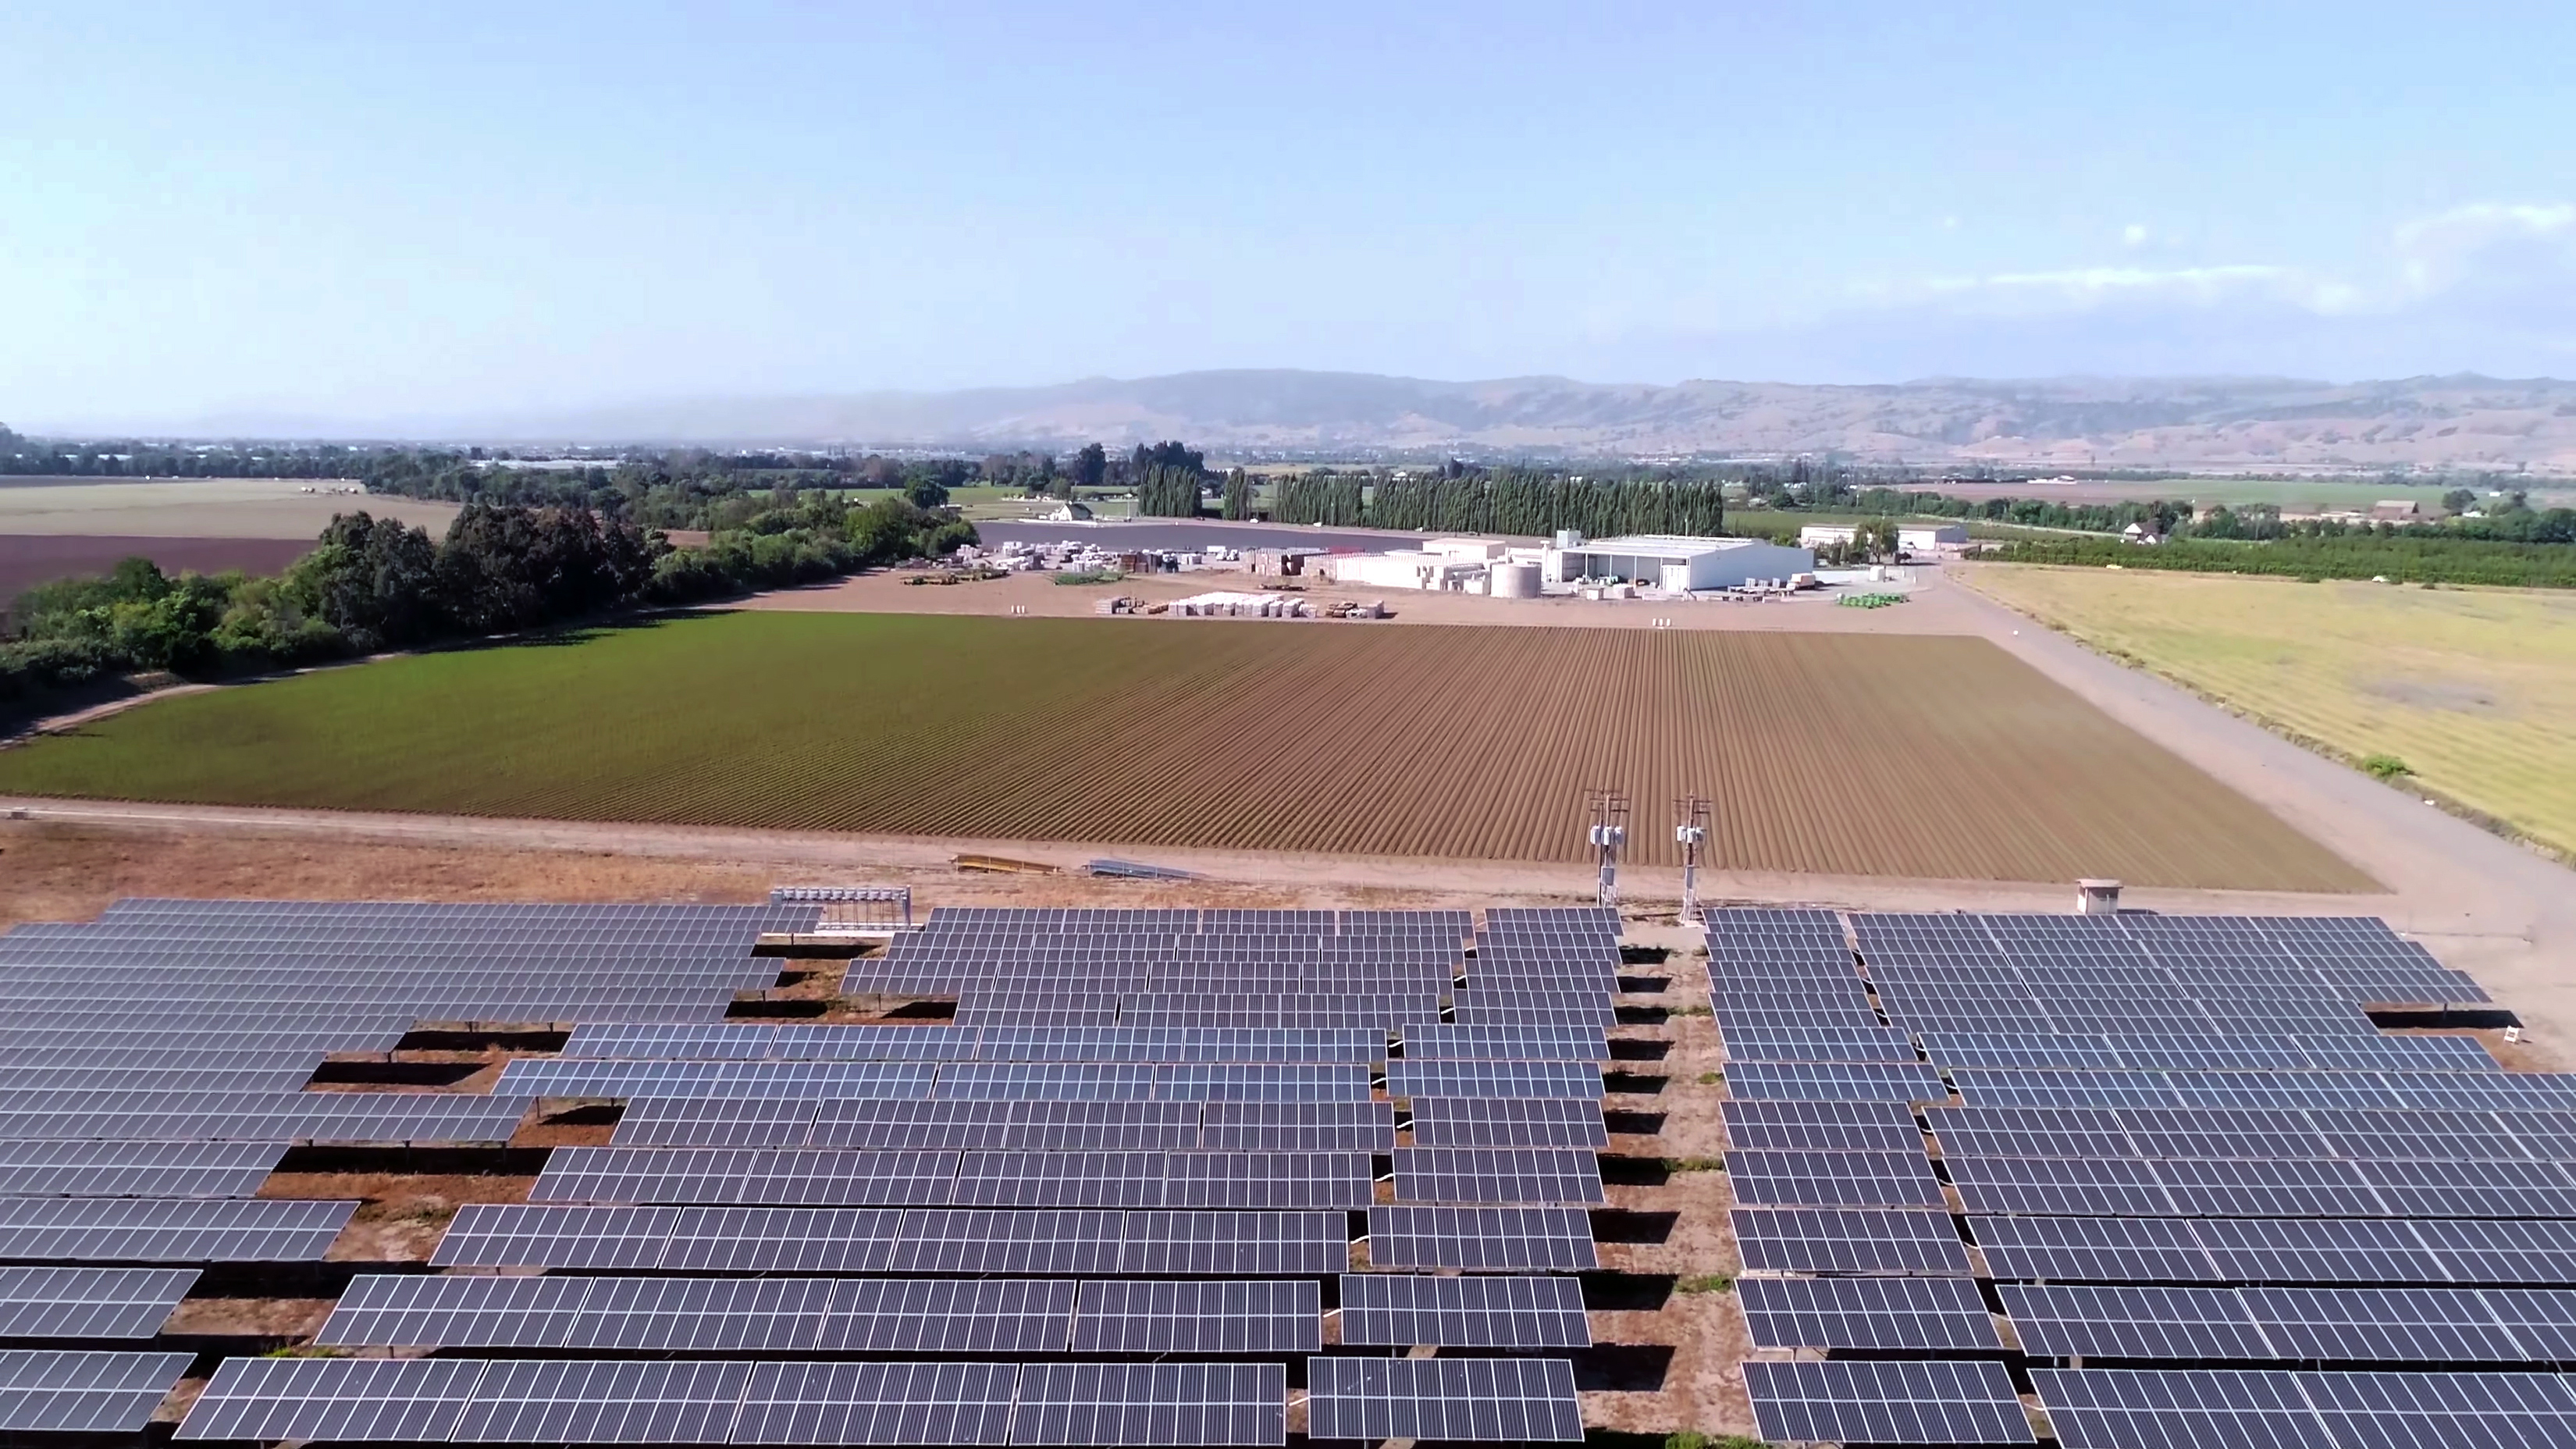 solar panels and agriculture fields